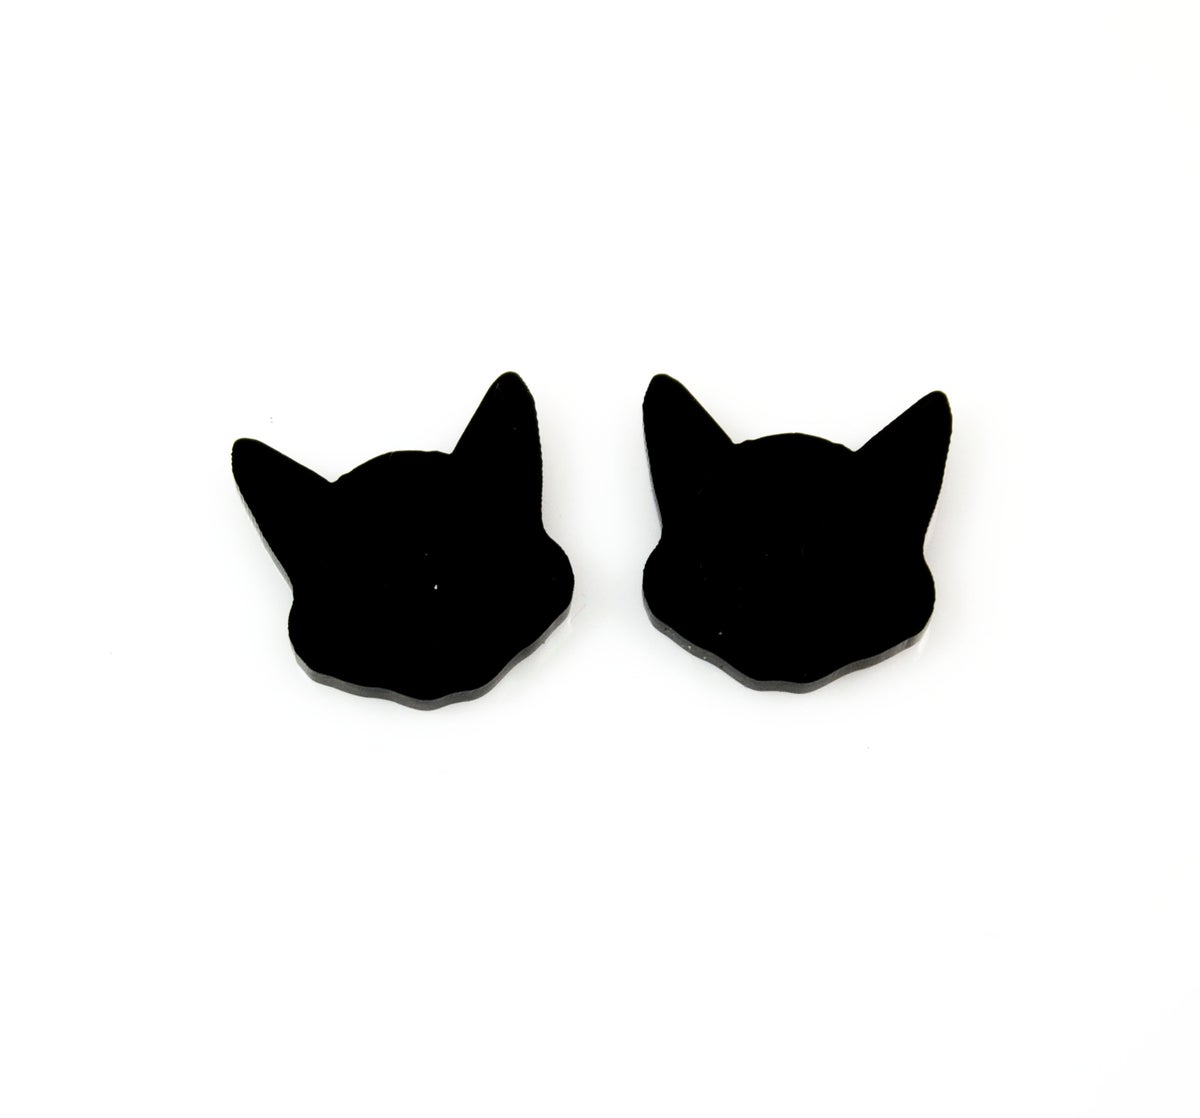 Image of Cat Face Silhouette Earrings